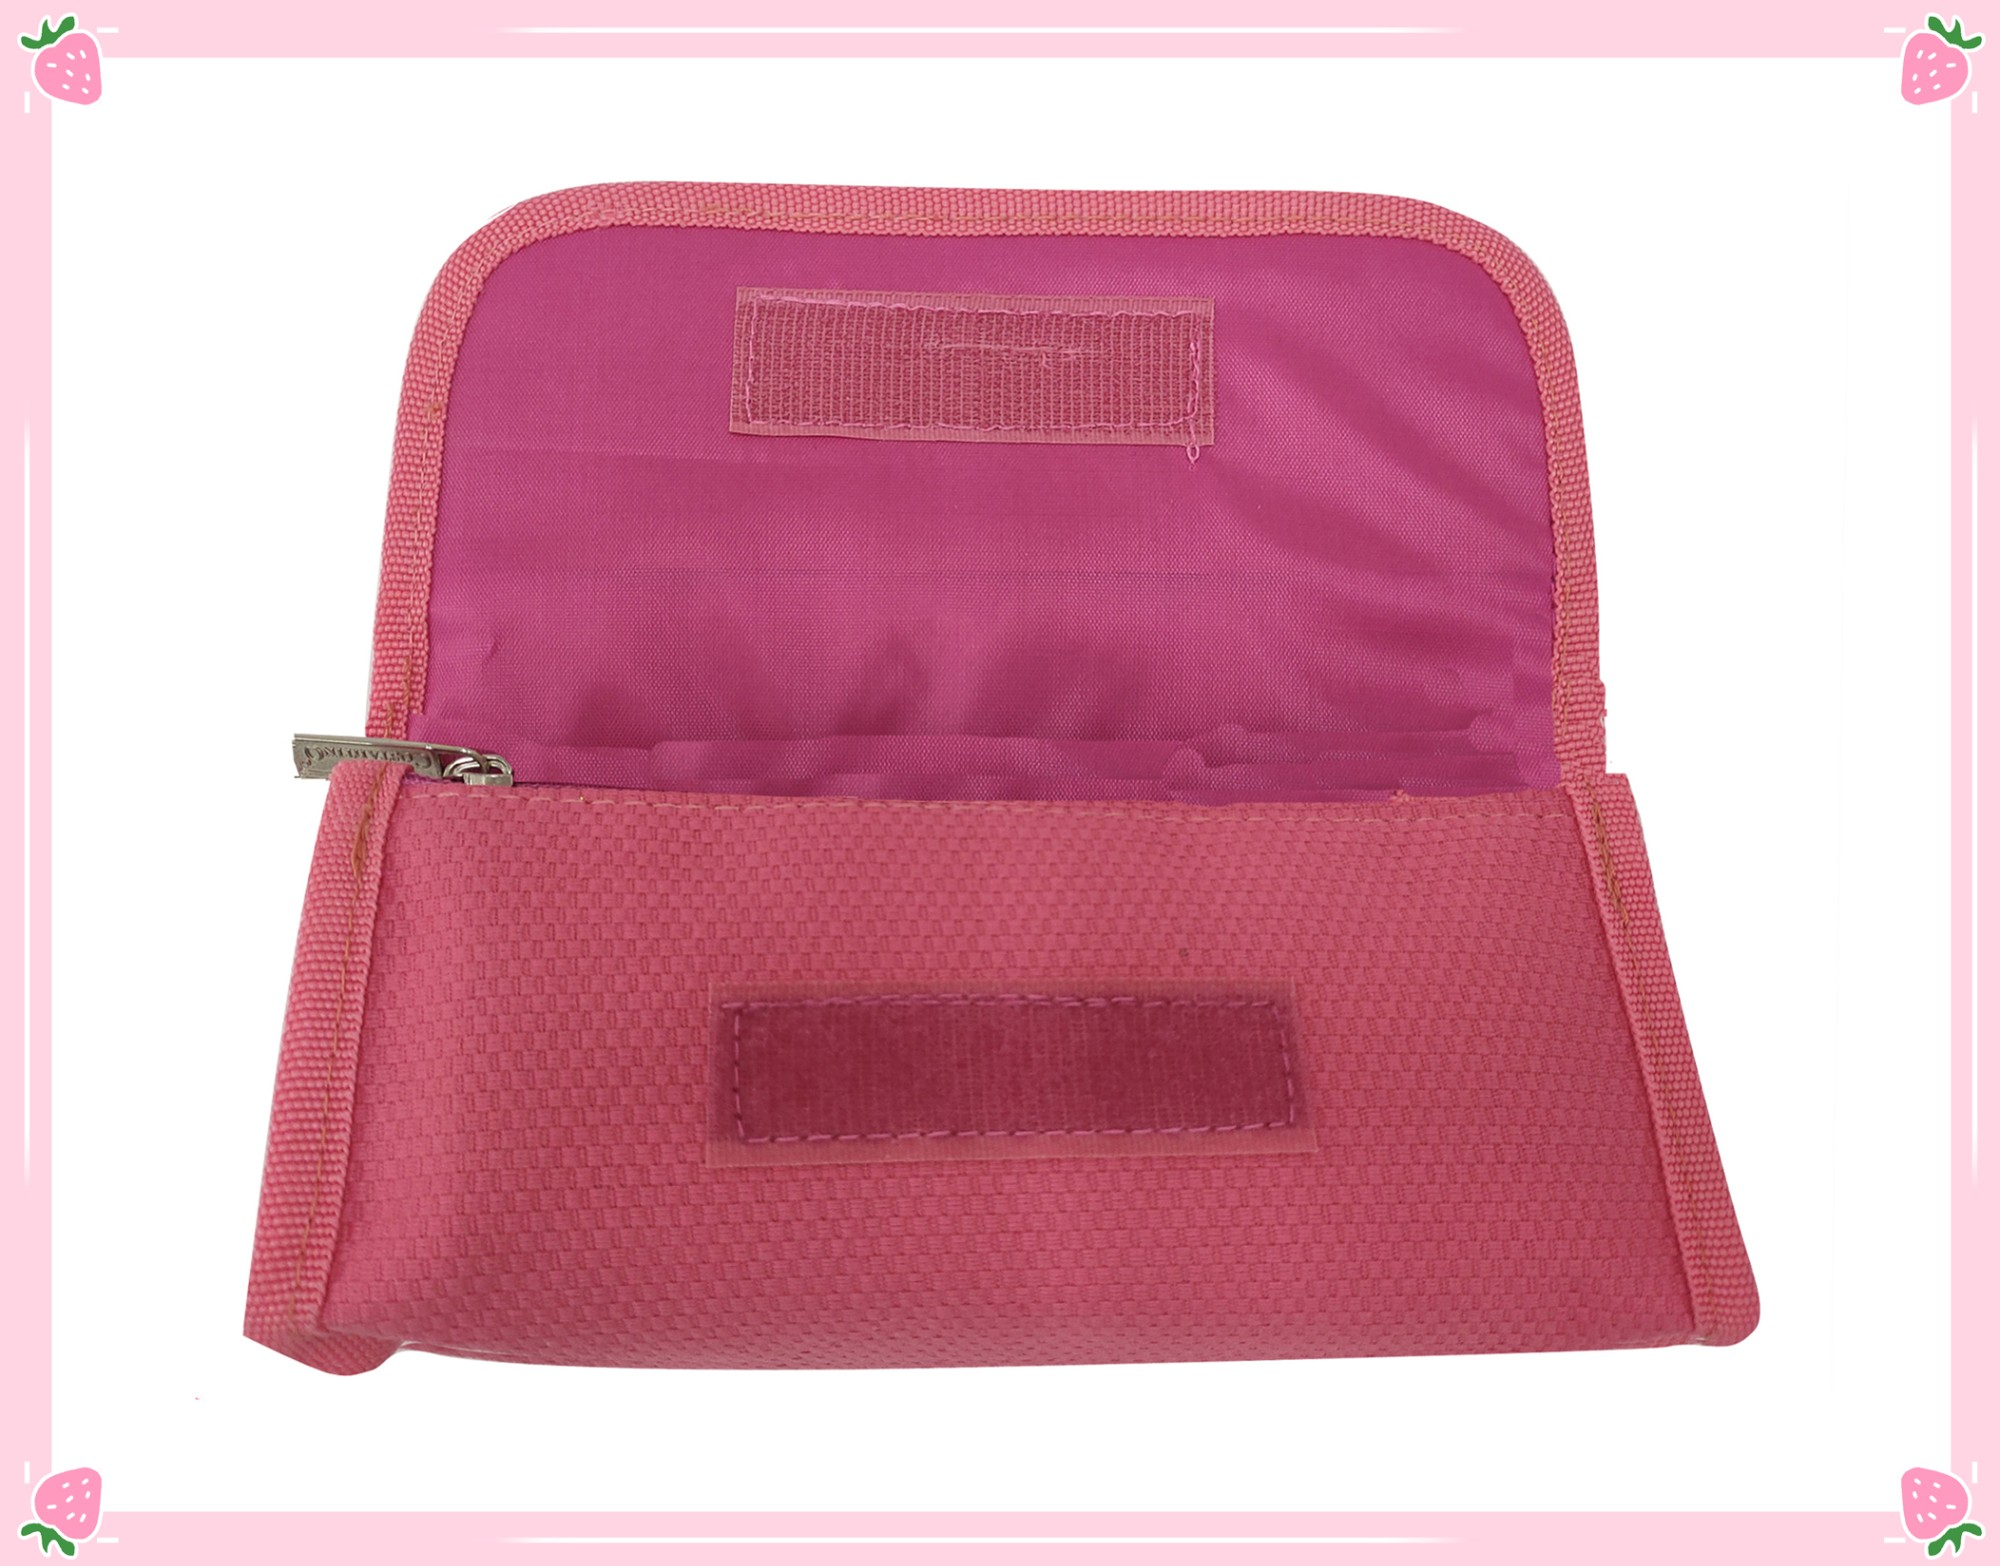 convenient & bright hangbag and pencilcase for women